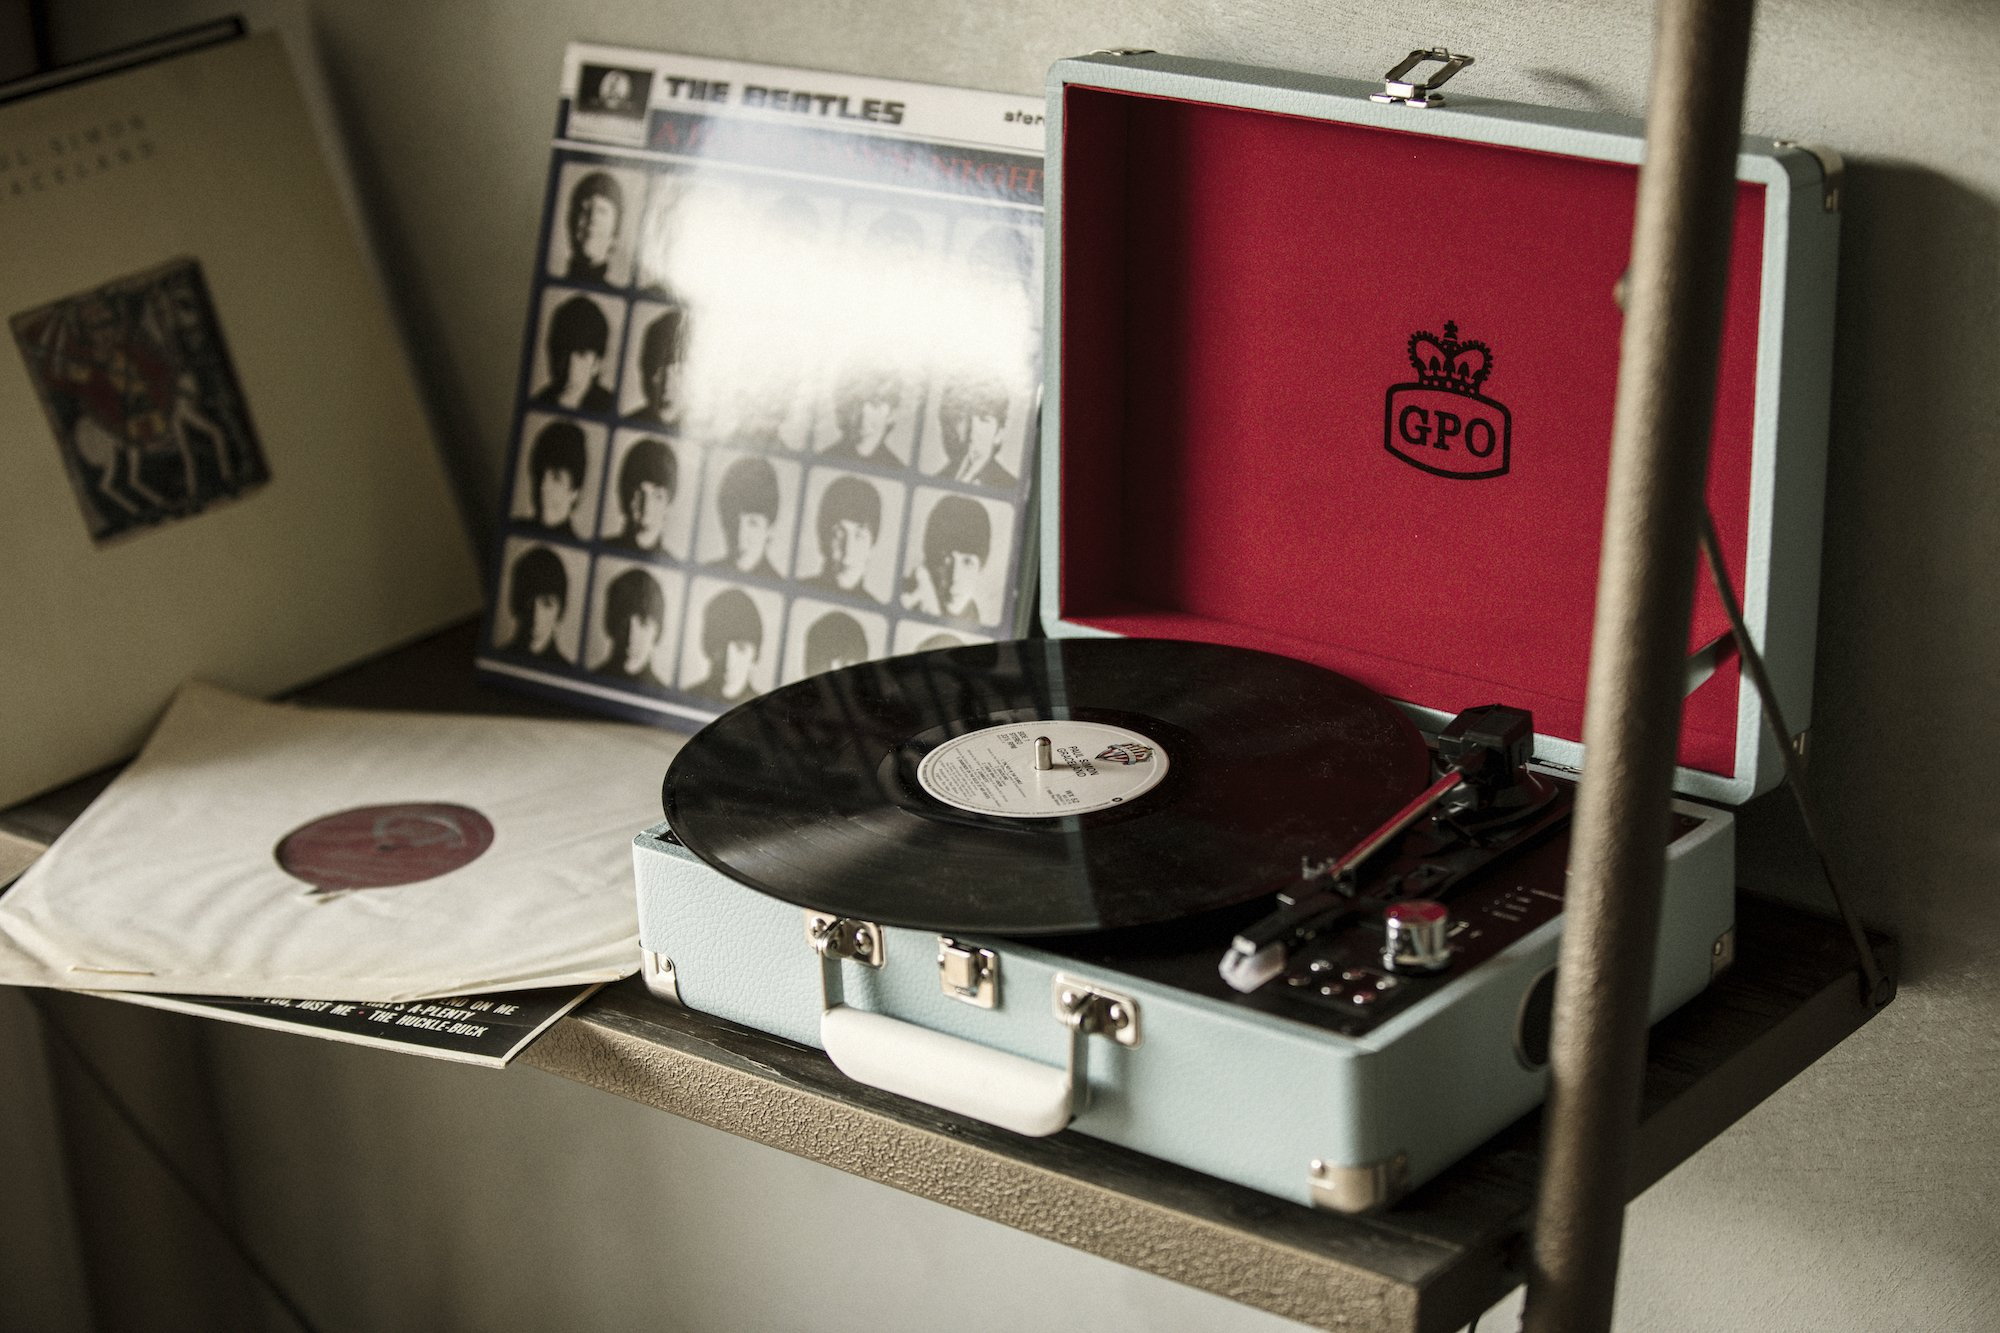 Every room at the Valsana Hotel und Appartements is equipped with a record player.